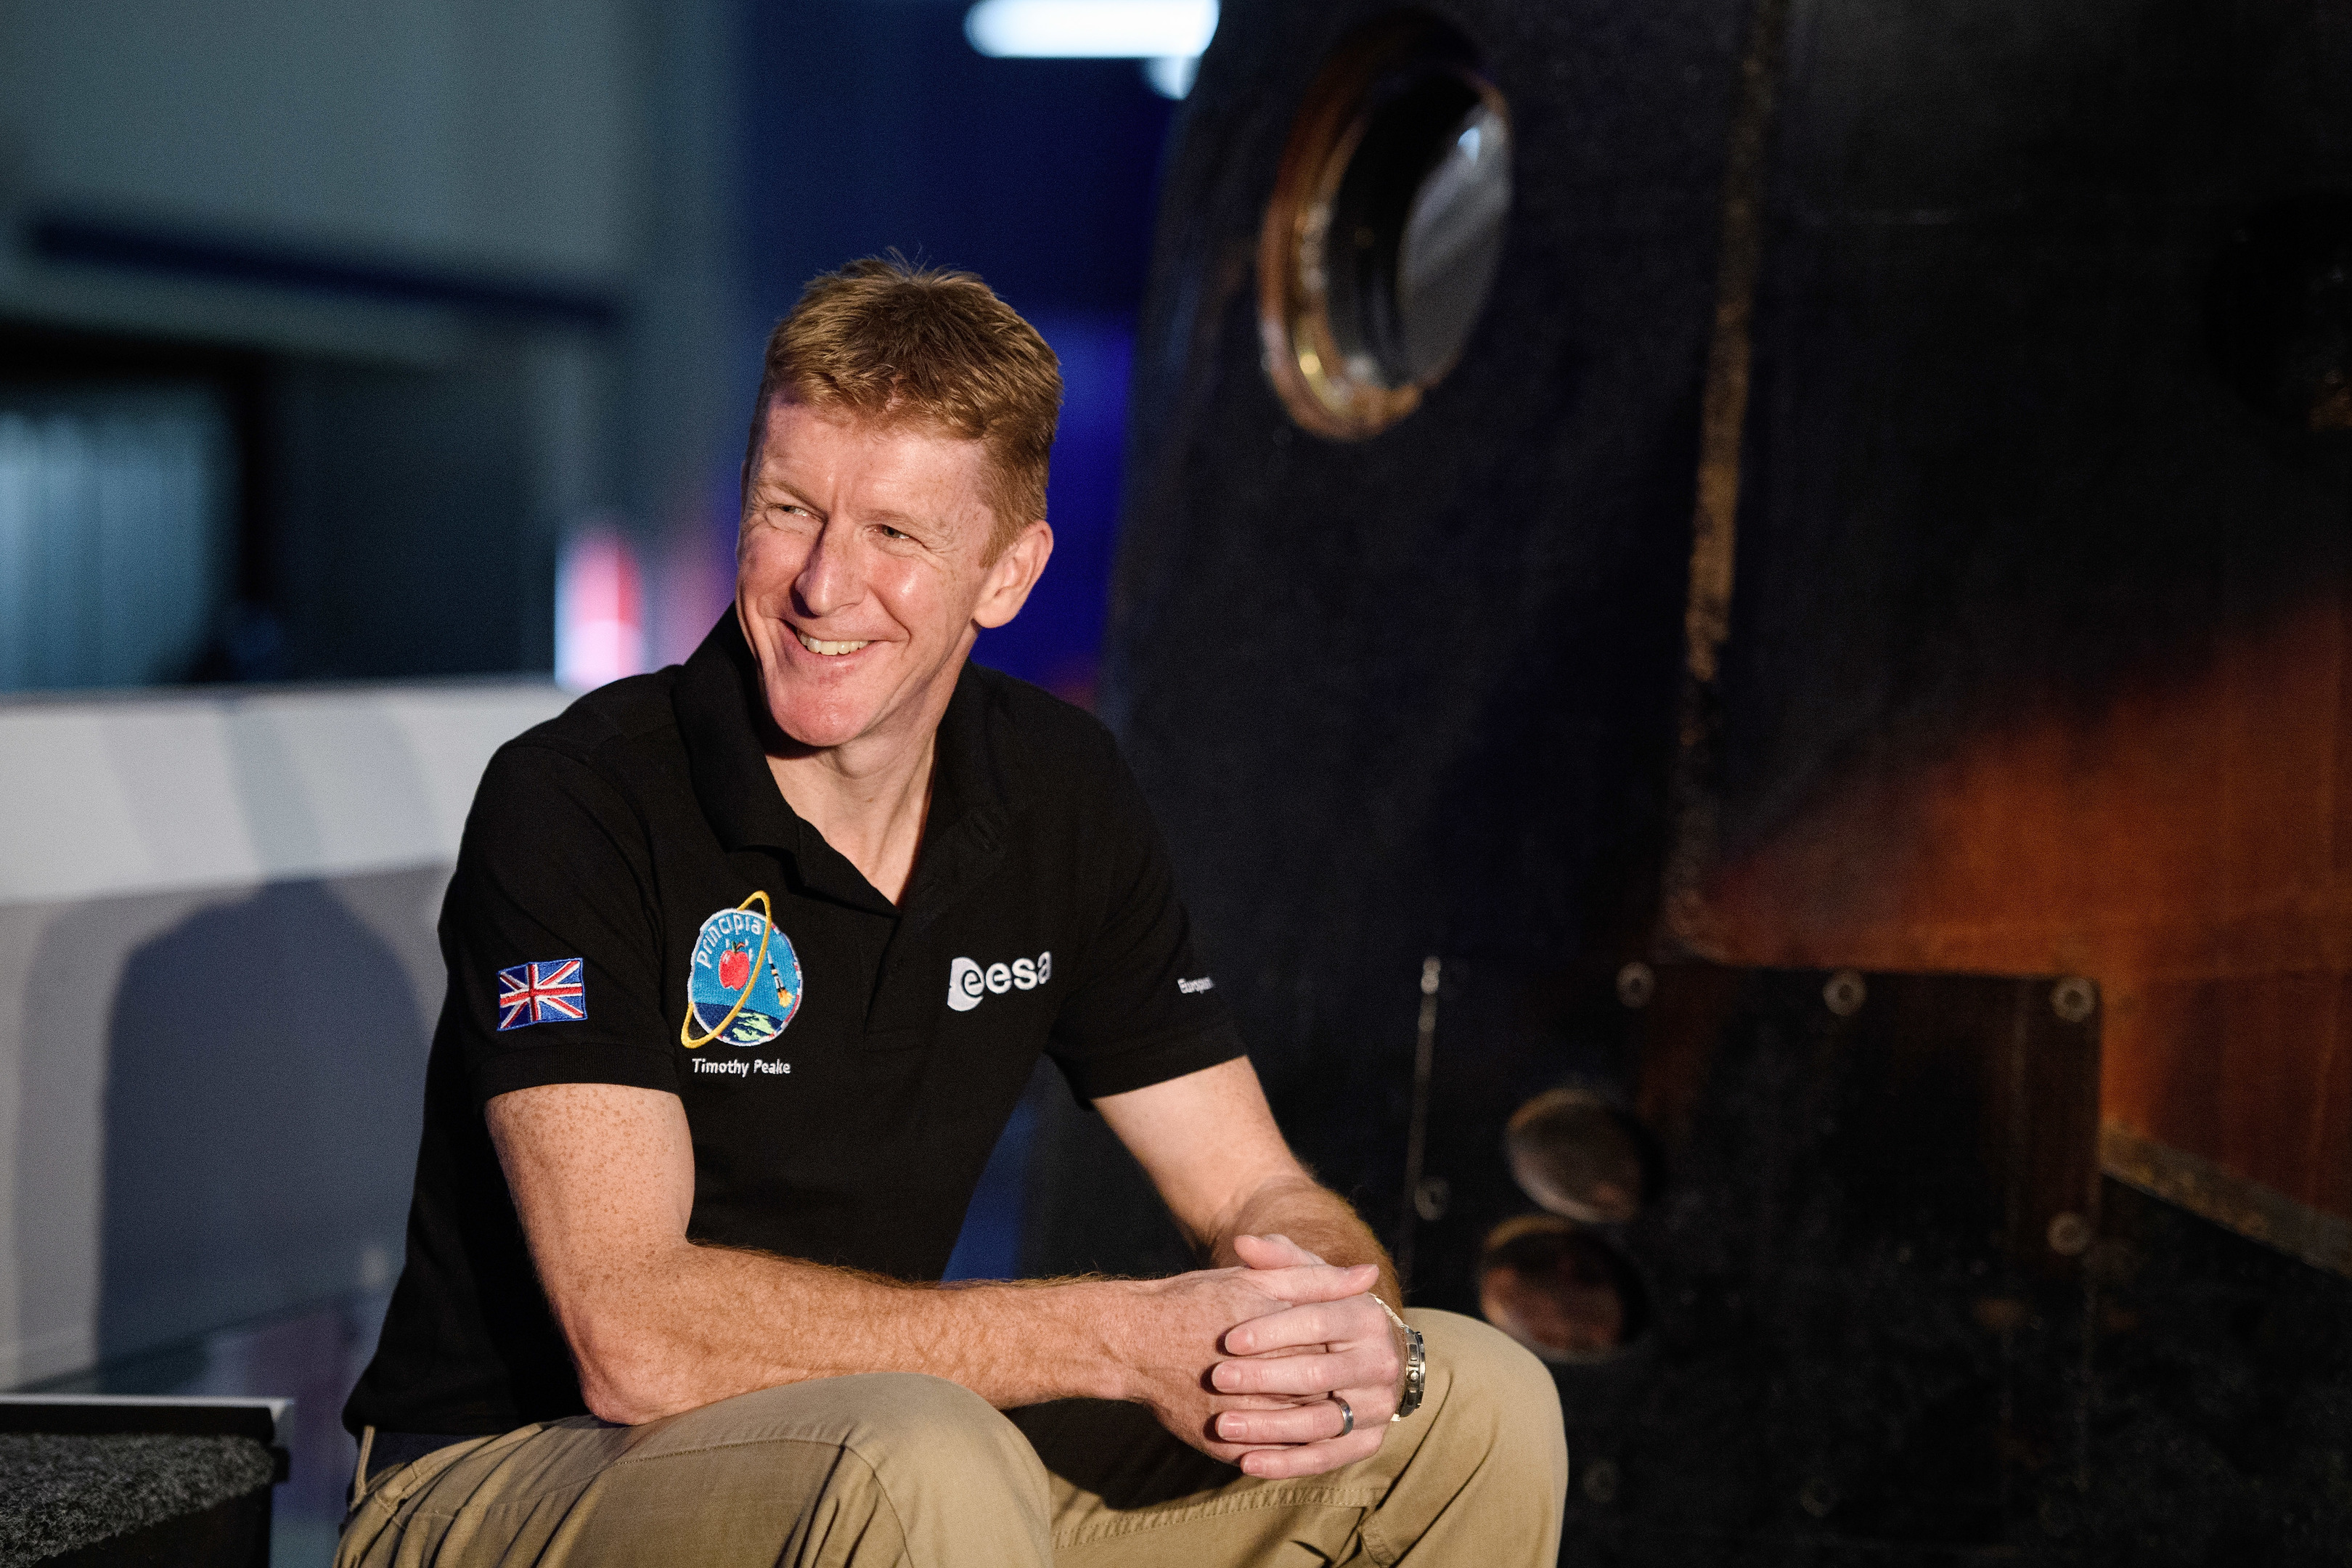 British astronaut Tim Peake poses with the Soyuz TMA-19M descent module which he used to return from the International Space Station (Leon Neal/Getty Images)